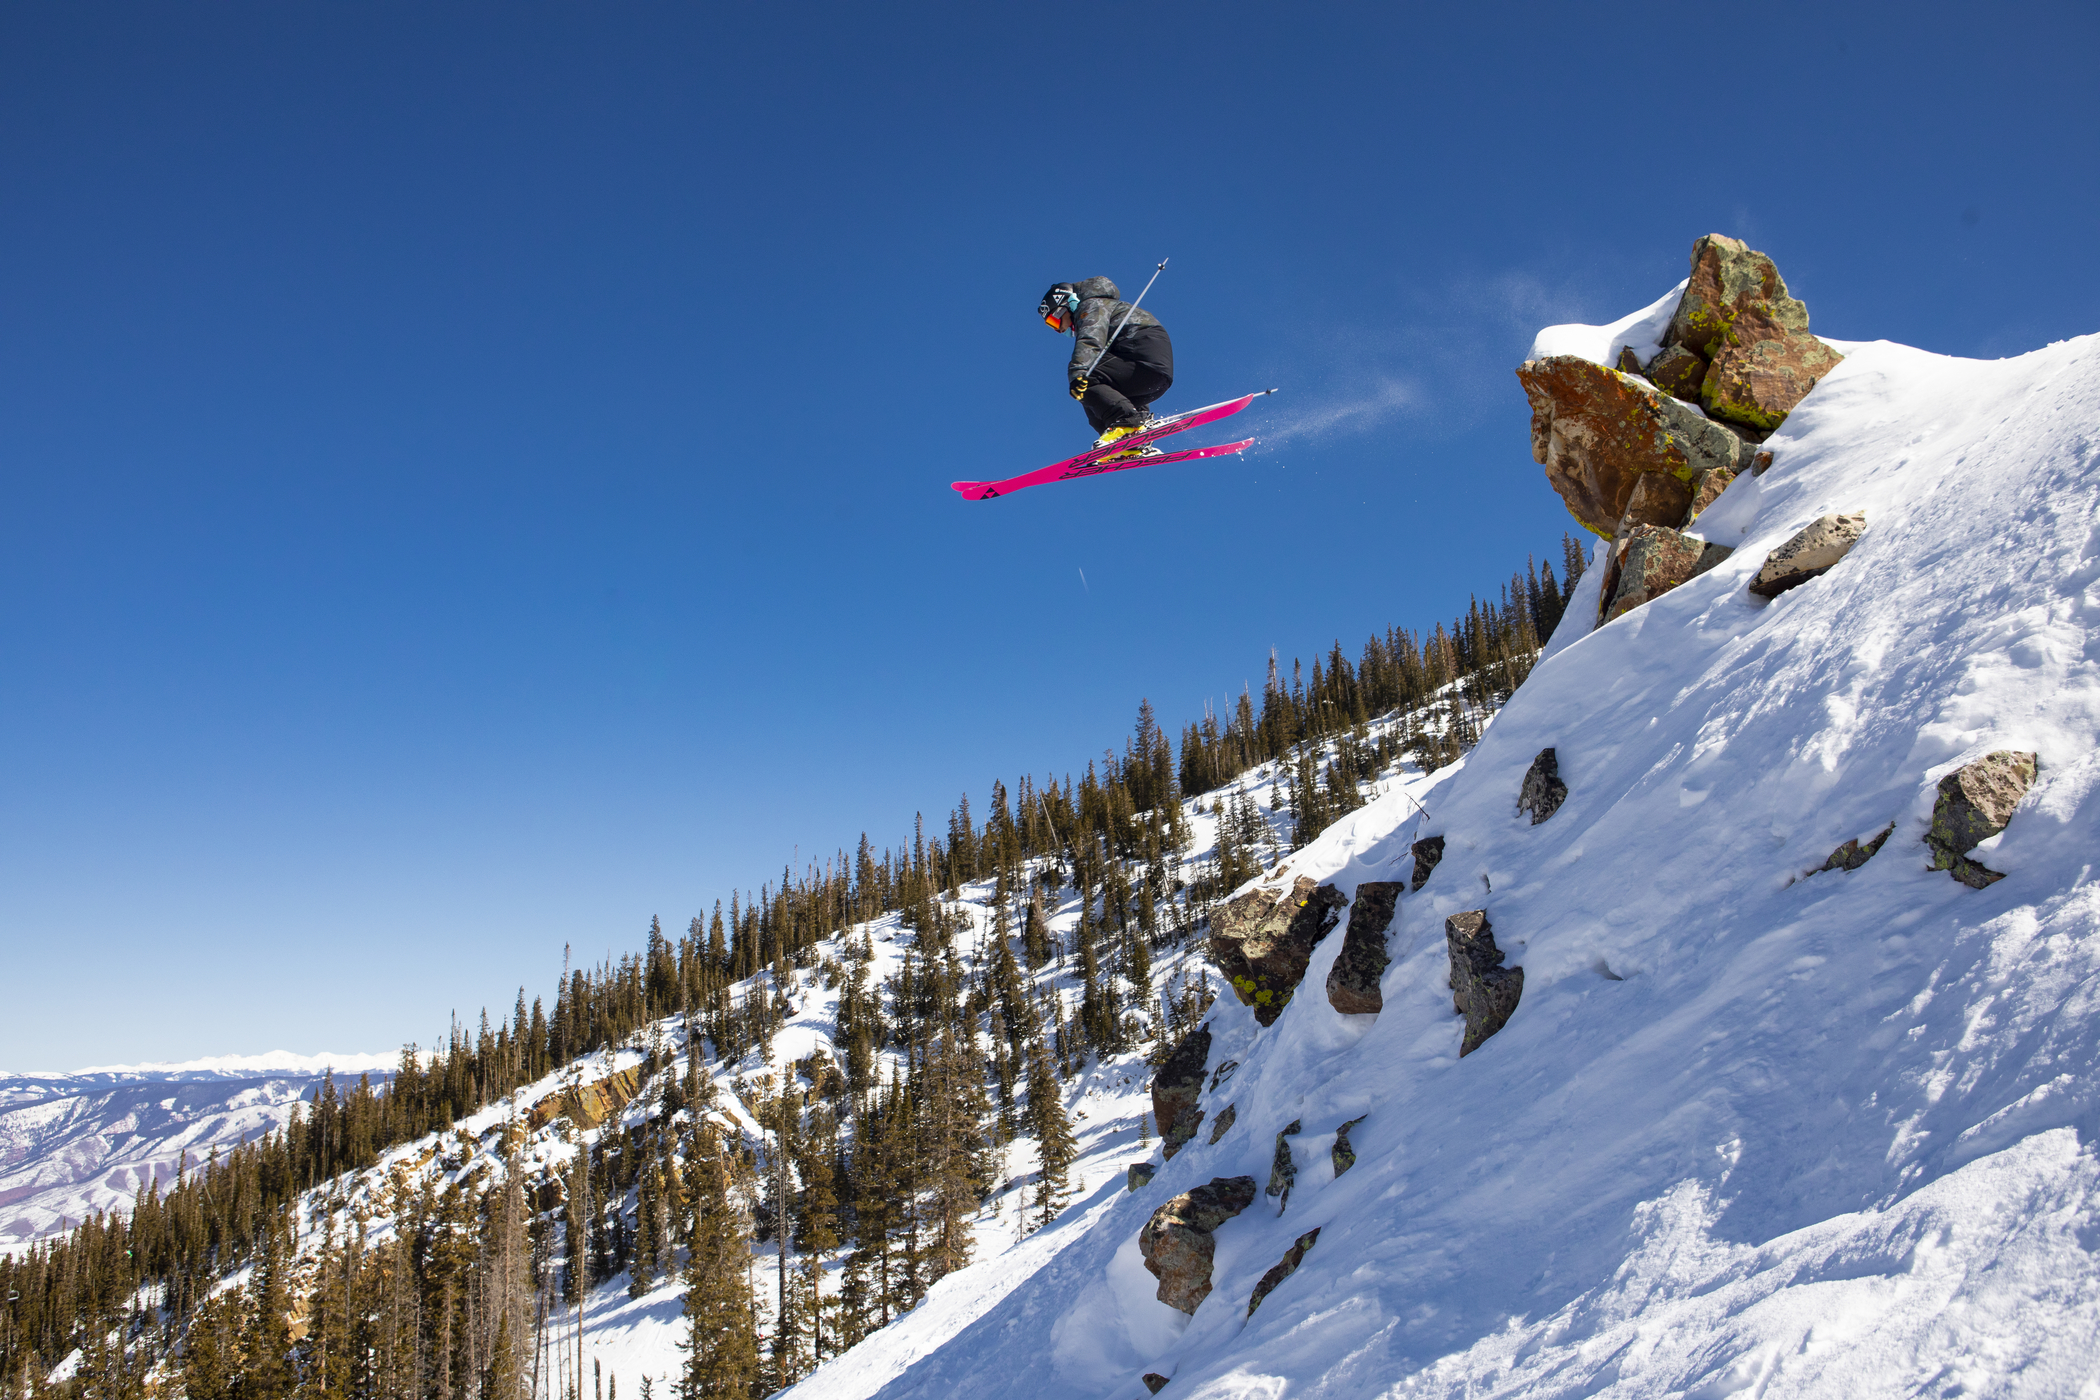 Catching some air in Snowmass. (Jeremy Swanson/Snowmass Tourism)